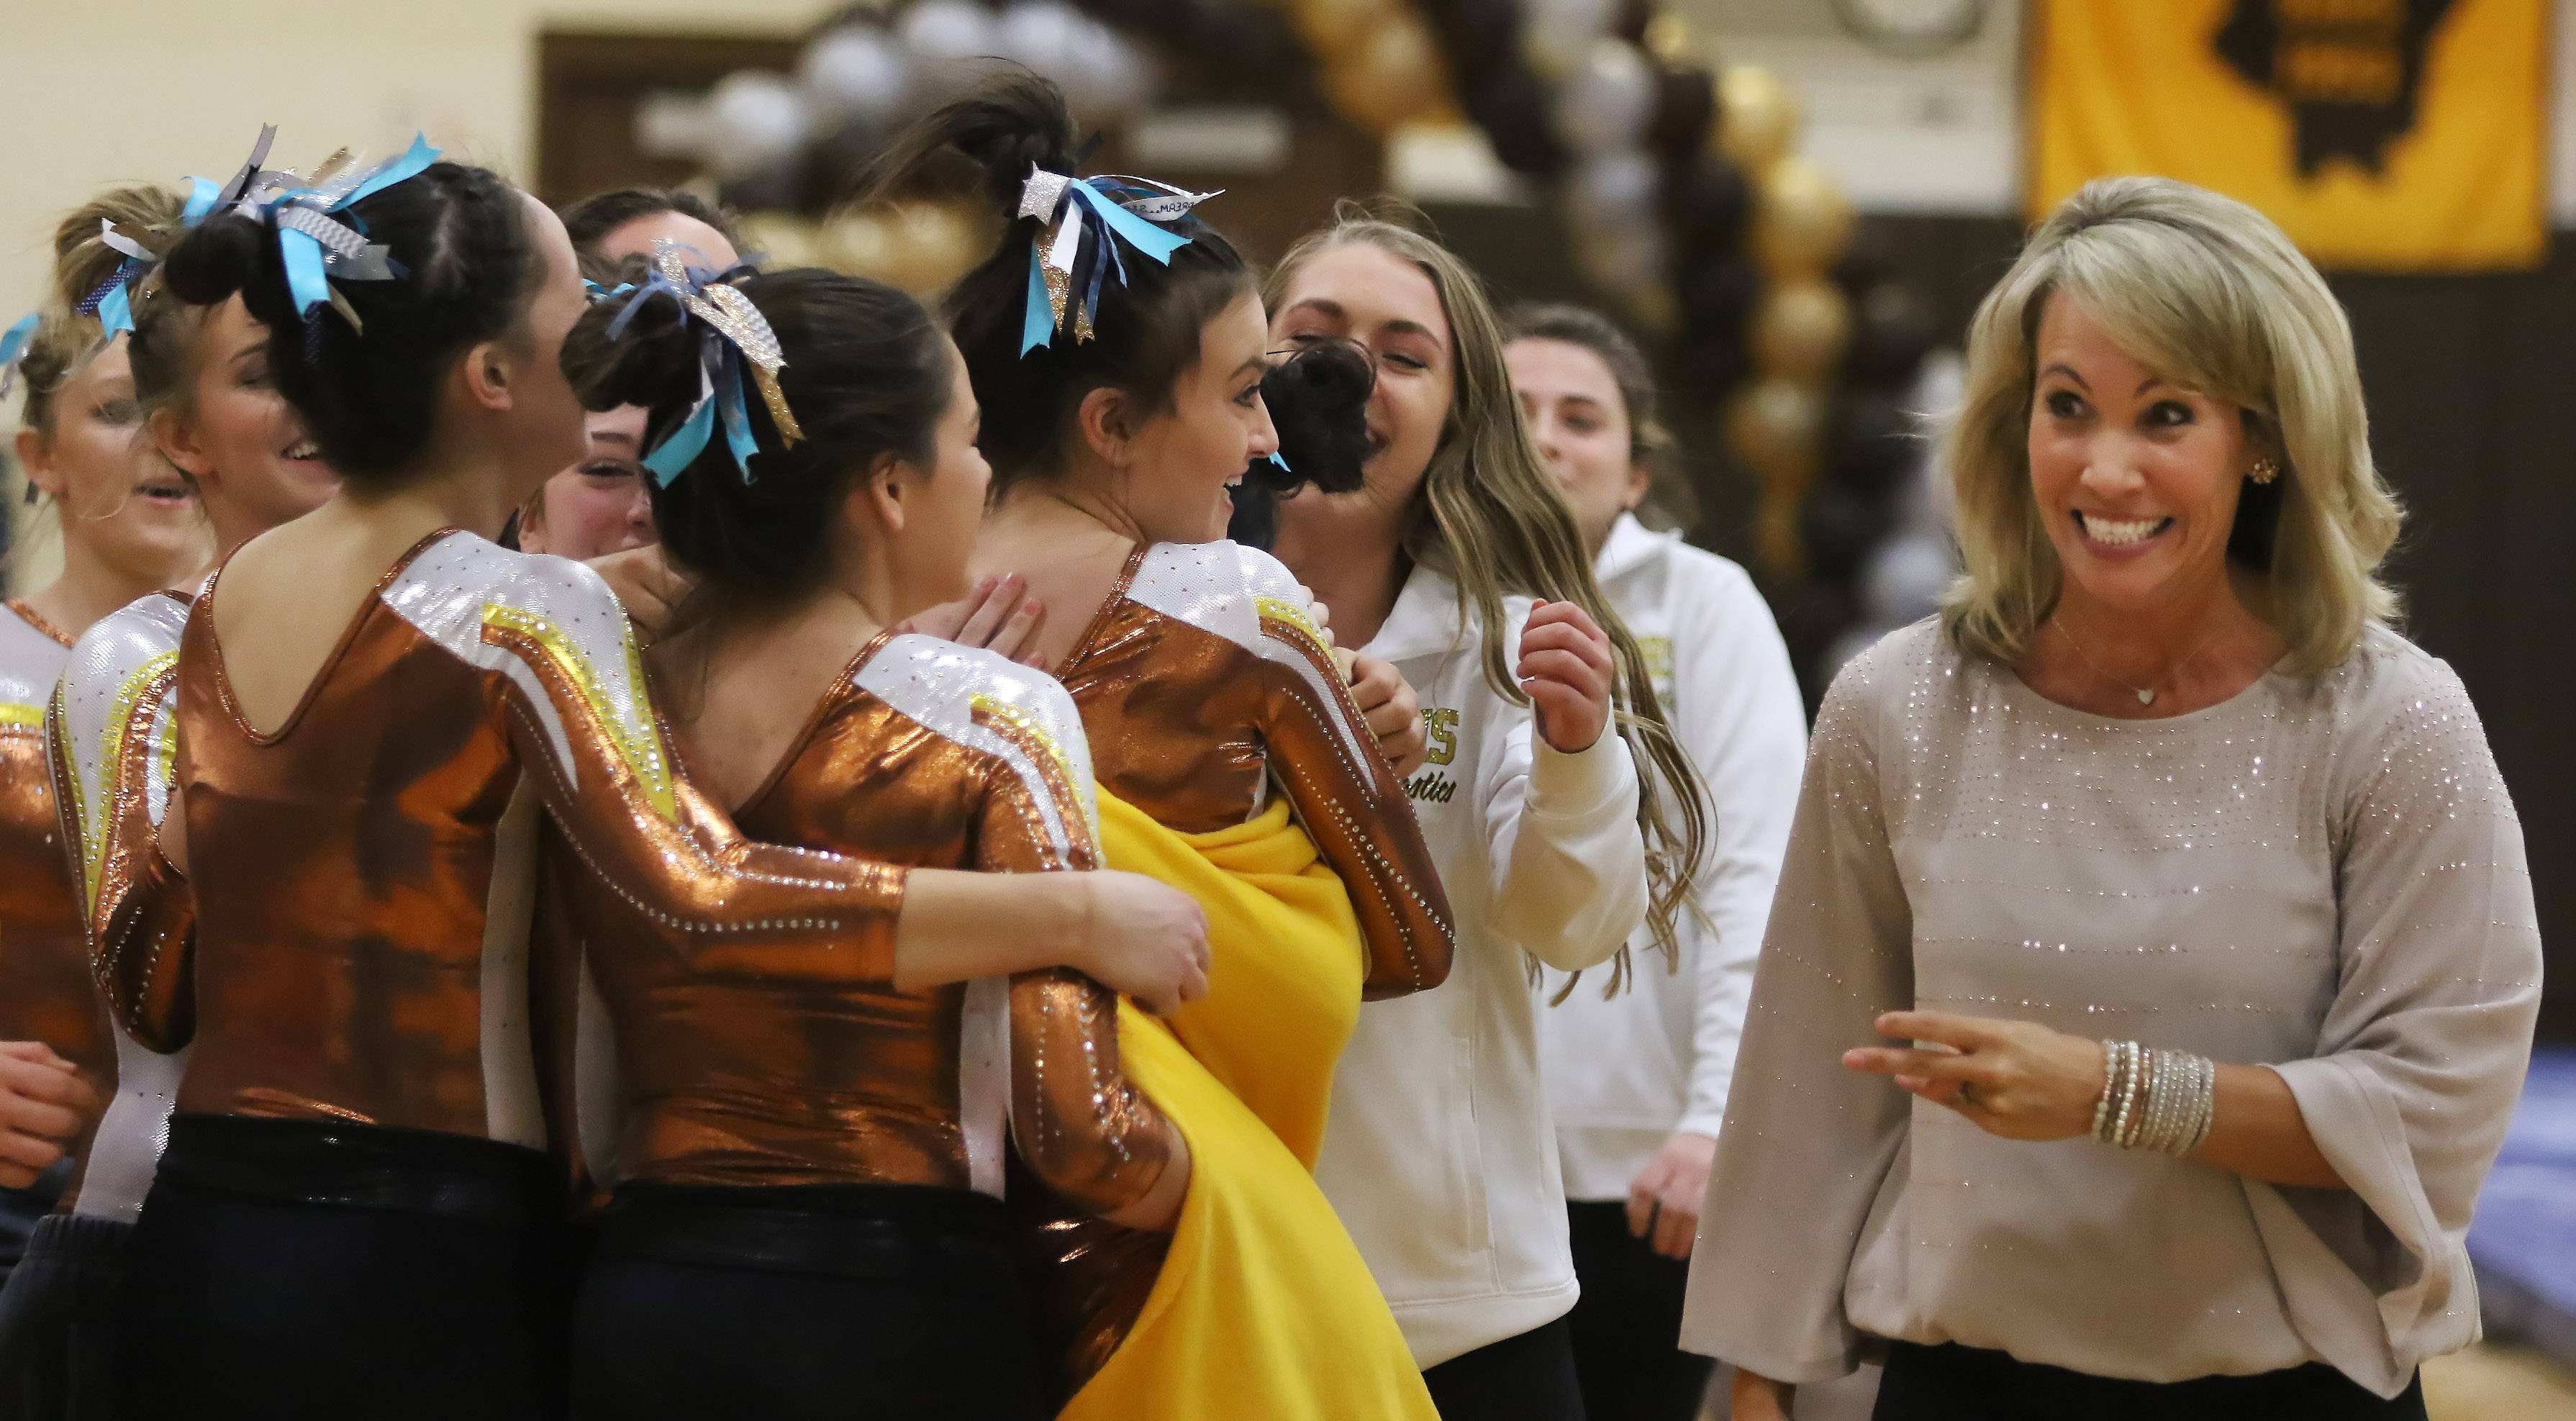 Carmel Catholic assistant girls gymnastics coach Sarah Mikrut Doyle, right, celebrates with her team during the vault competition in Thursday's regional meet hosted by the Corsairs.